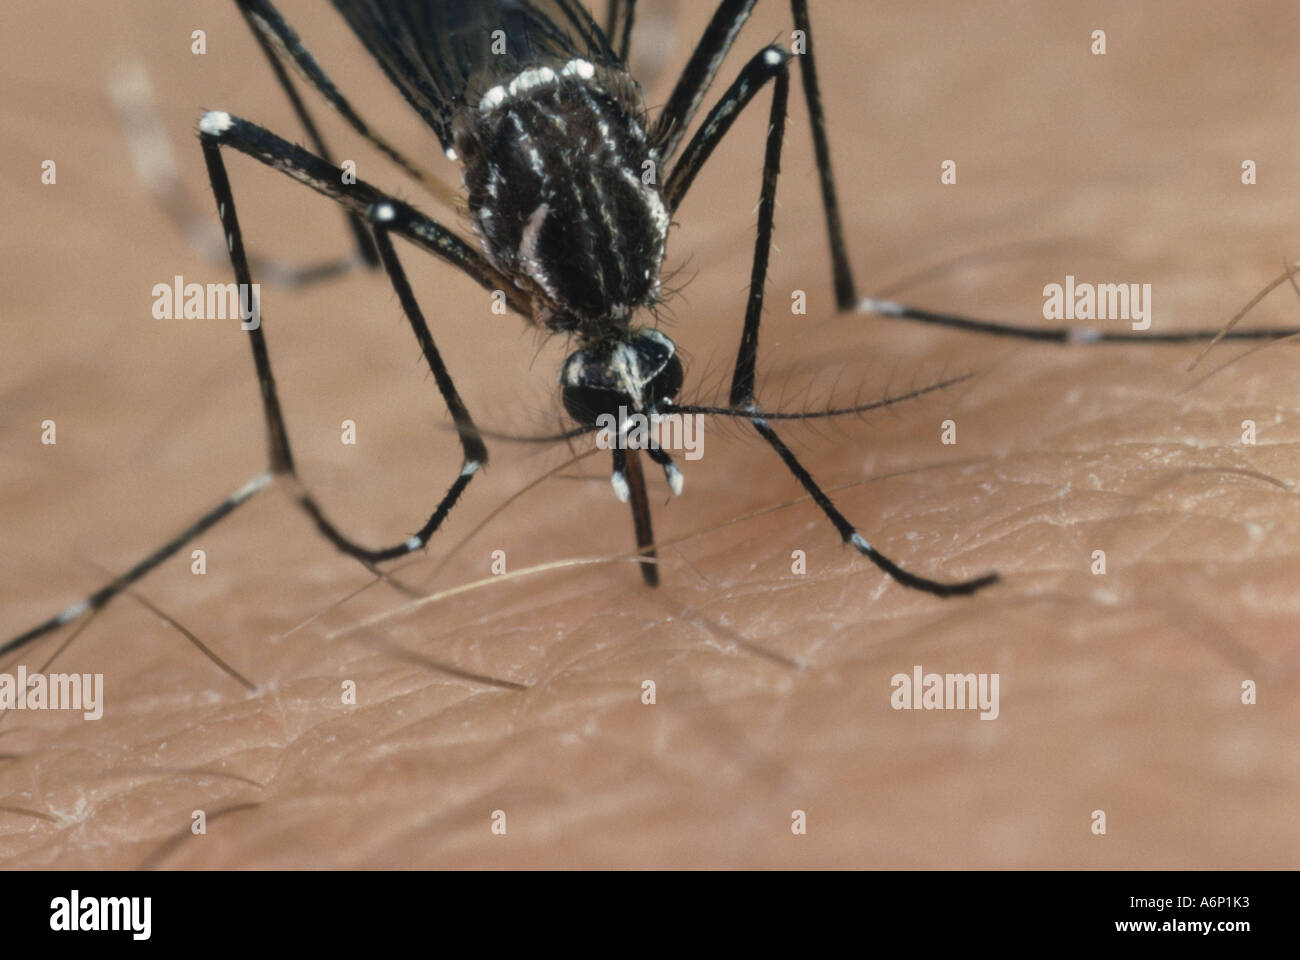 Egyptian Mosquito Aedes aegypti a yekllow fever insect vector - Stock Image